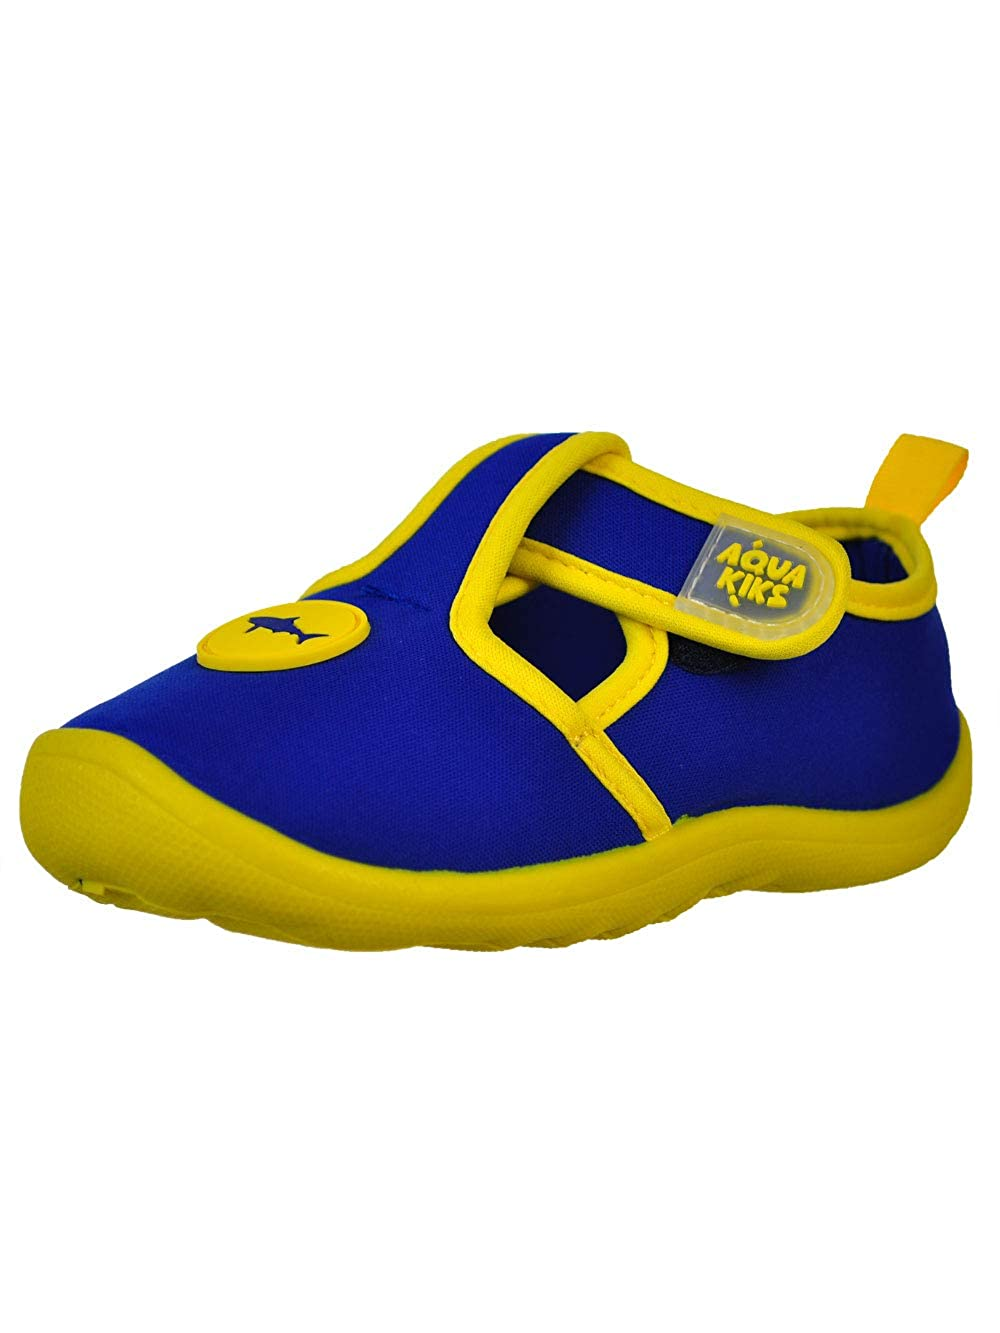 7 Toddler 52408//2-NVY-T7 Aqua Kiks Boys Water Shoes Navy//Yellow